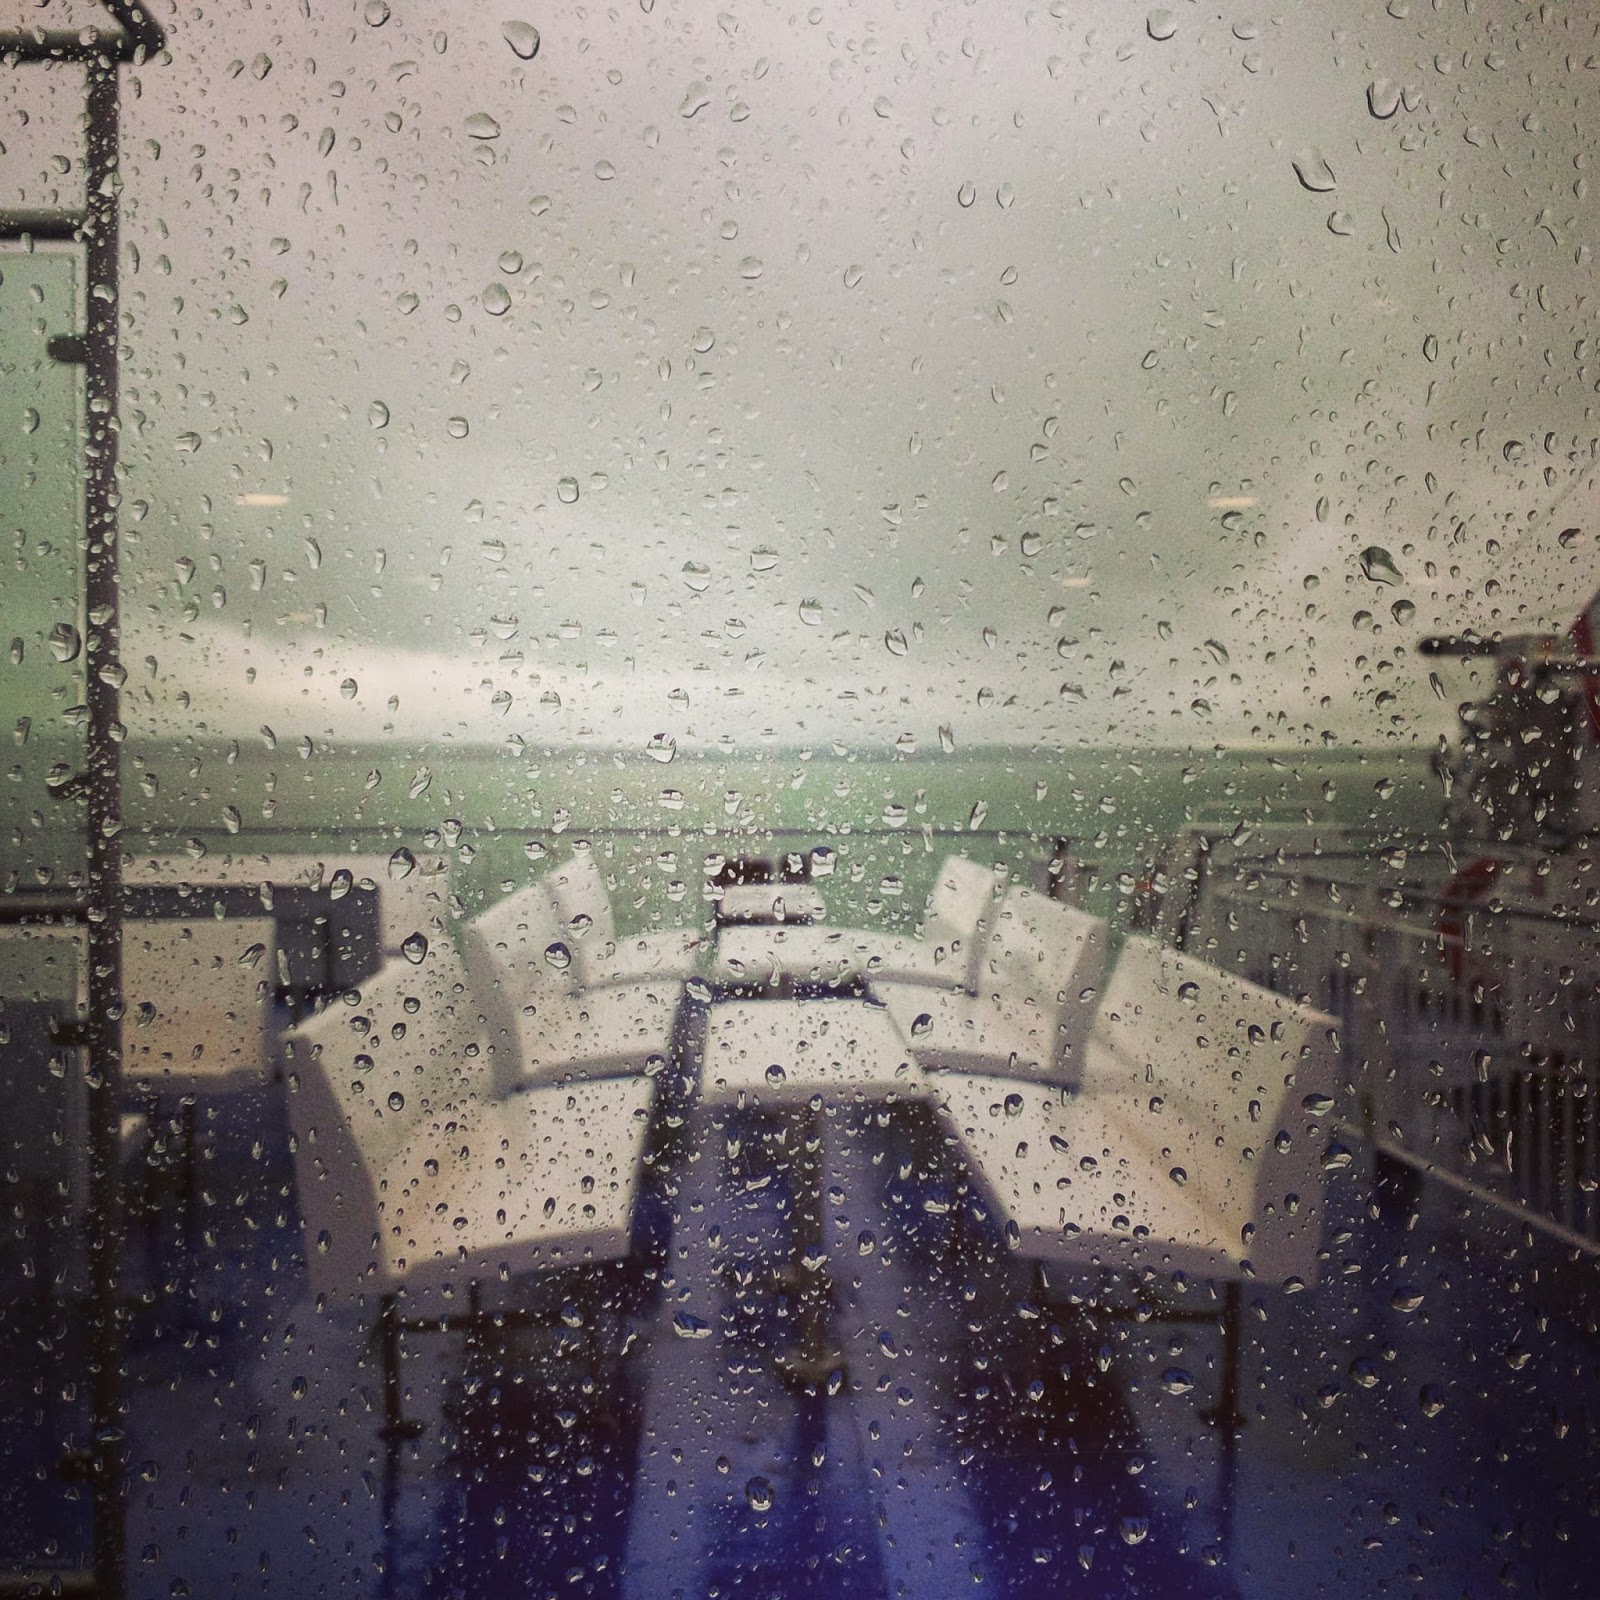 A rainy view from the ferry to the Isle of Wight